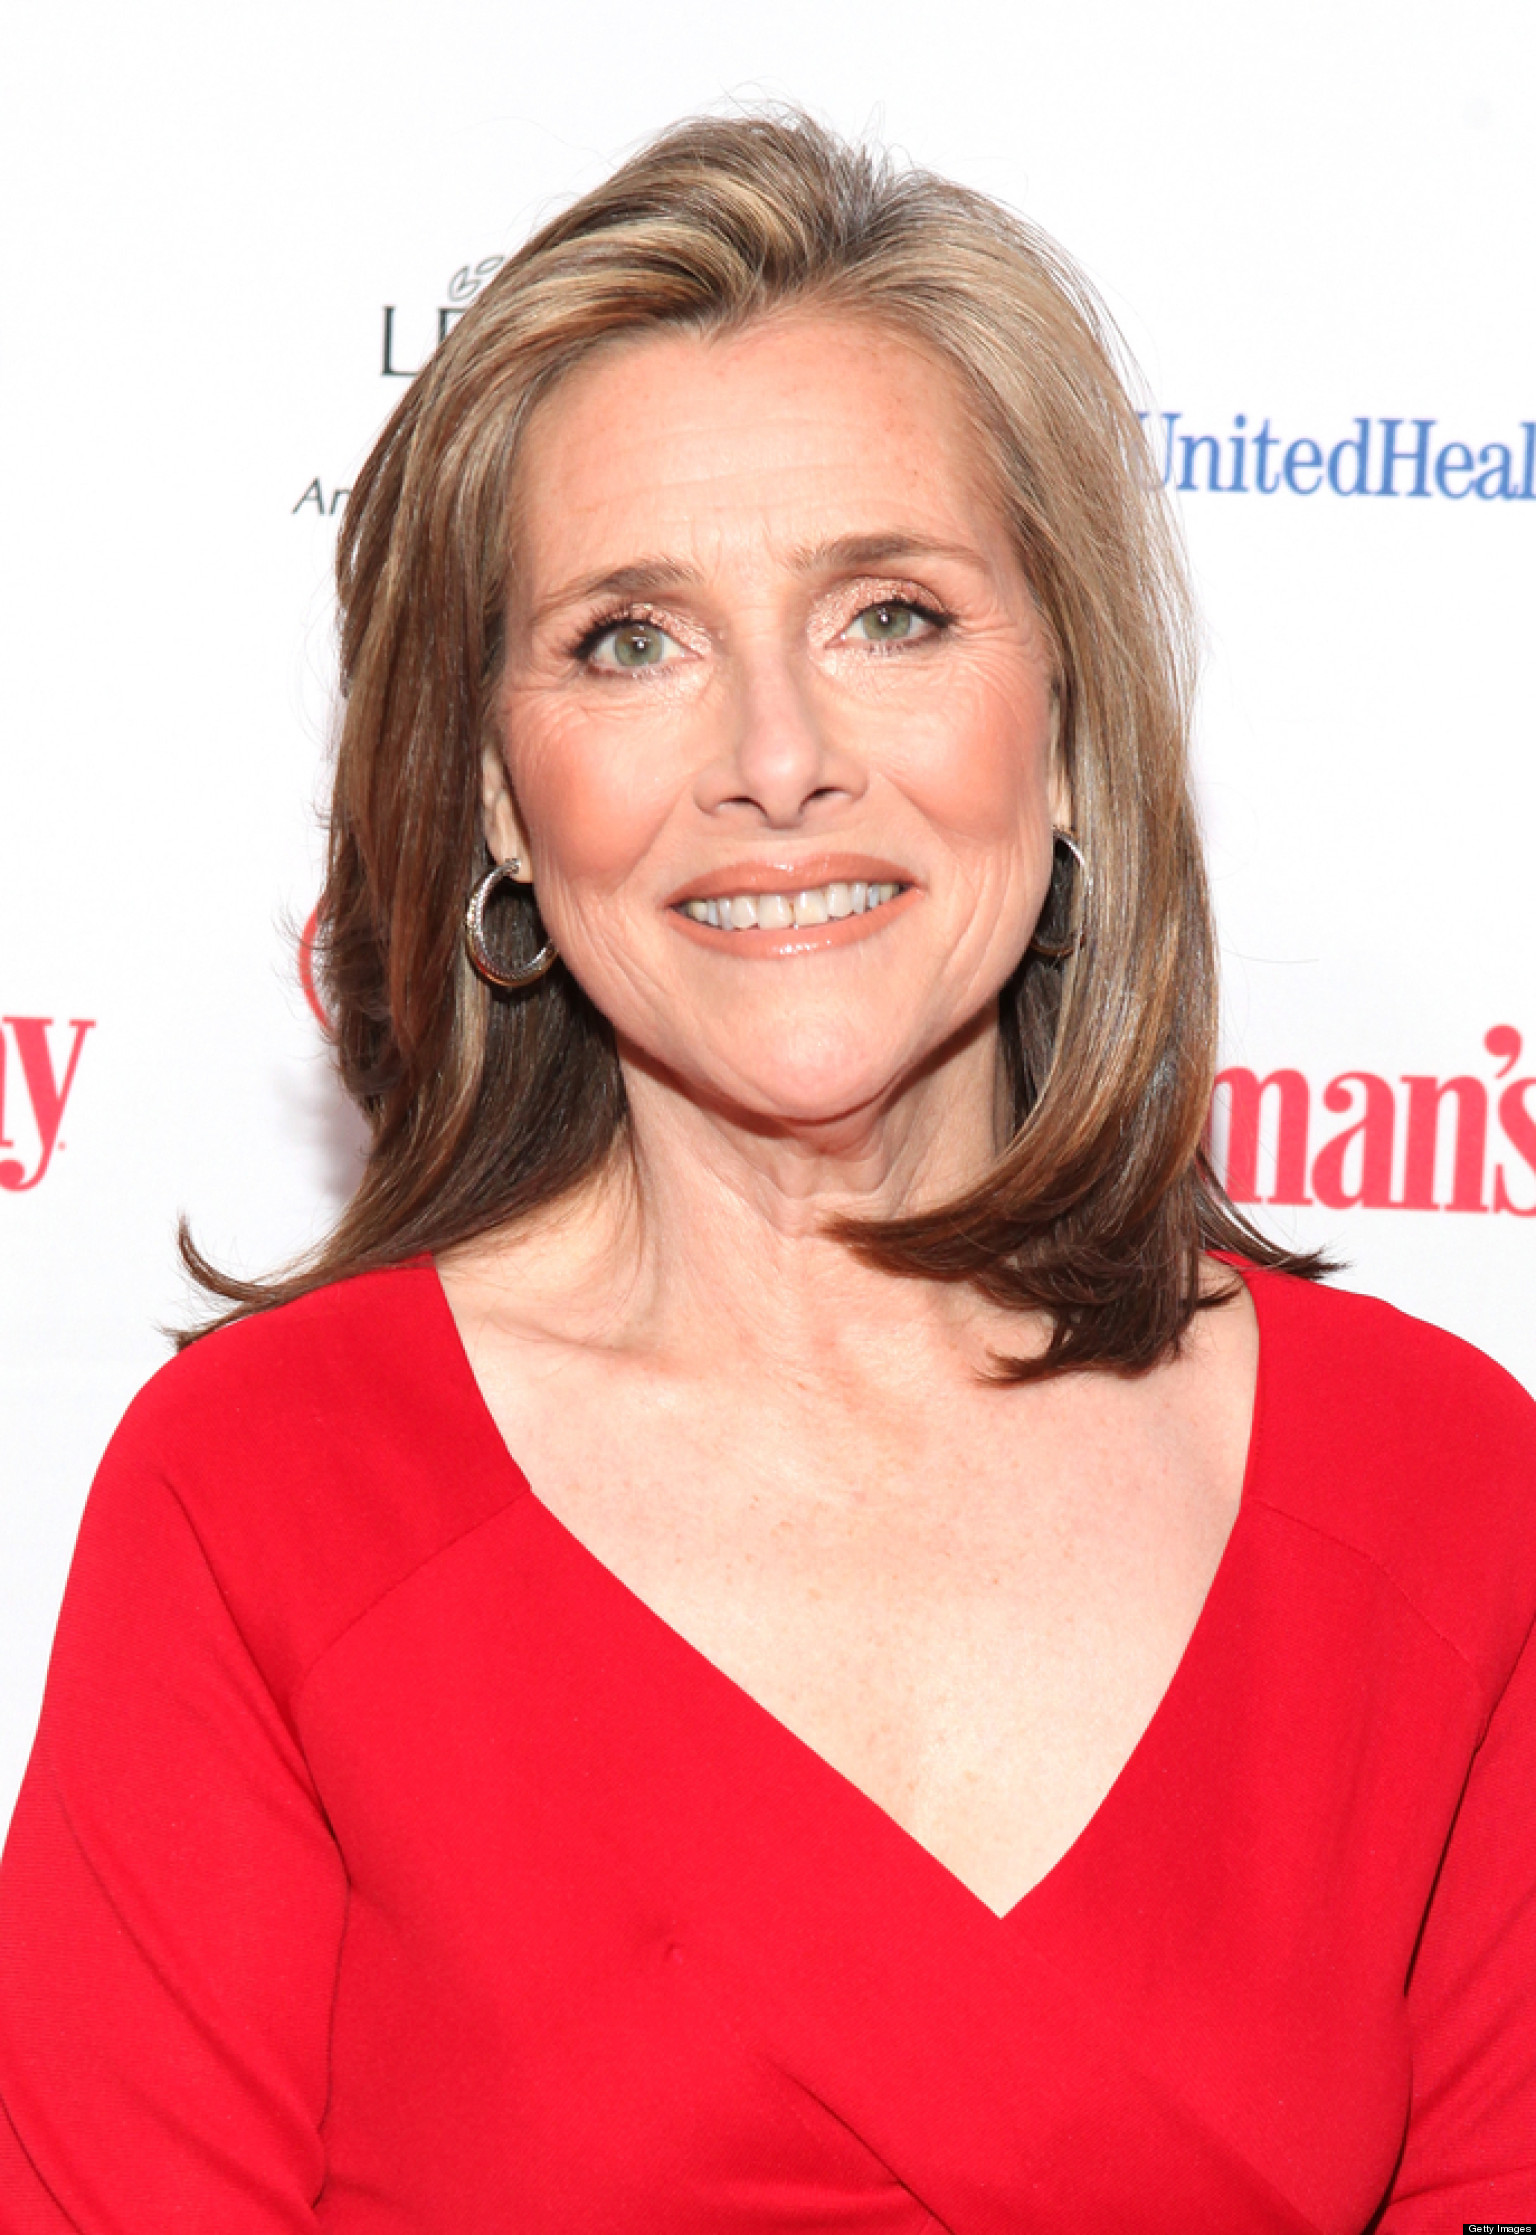 The 63-year old daughter of father Edwin Vieira and mother Mary Elsie Rosa Silveira Vieira, 160 cm tall Meredith Vieira in 2017 photo